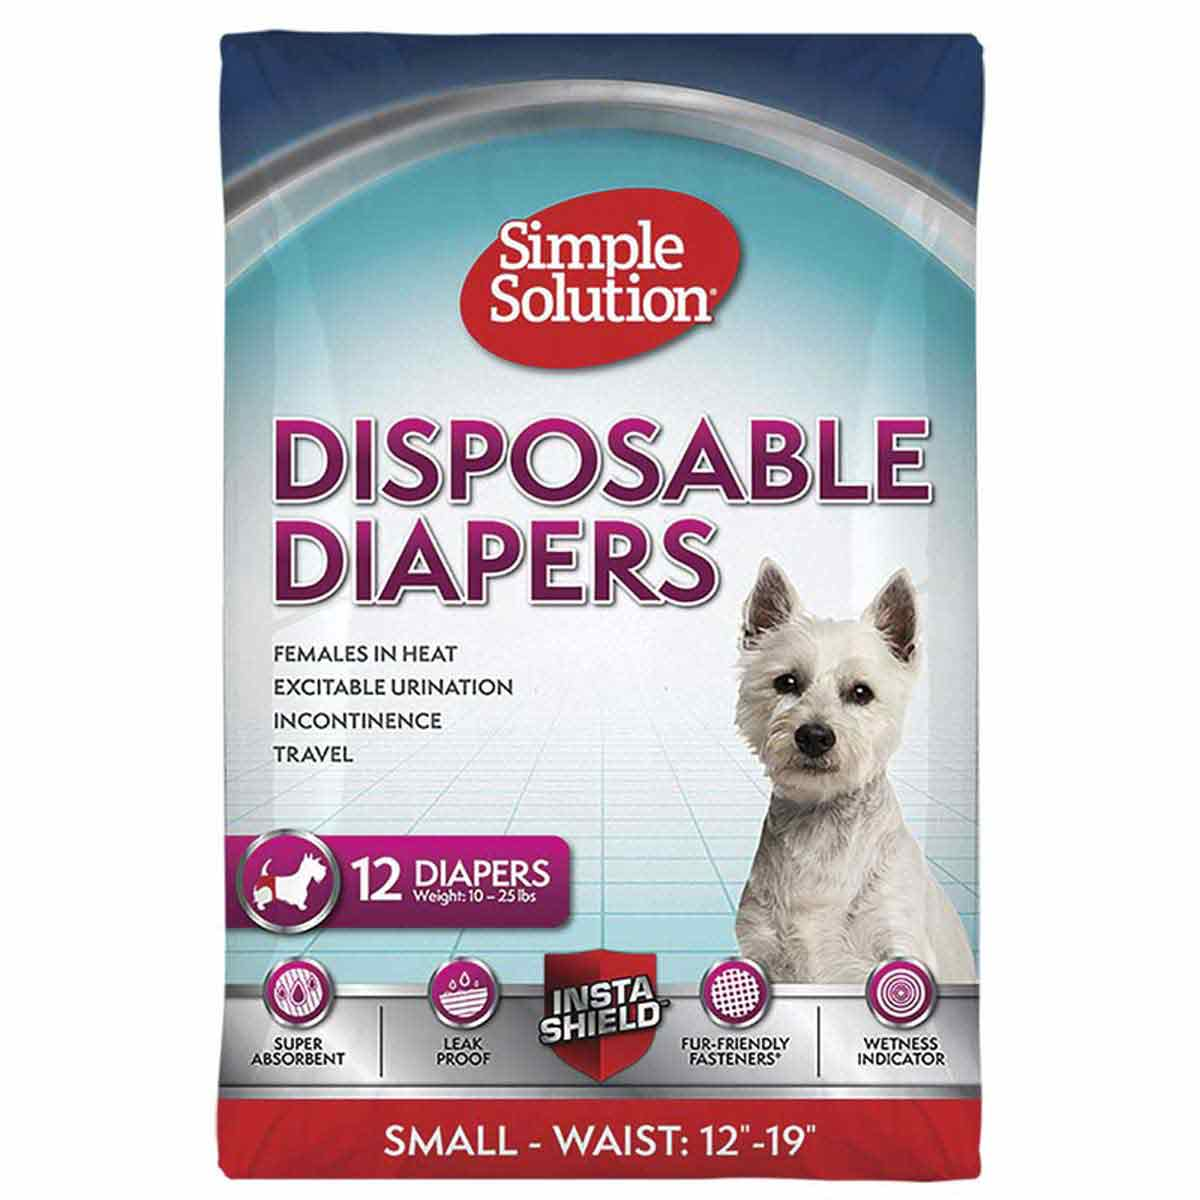 Small Simple Solution Disposable Diapers for dogs 12 Pack 10-25 lbs